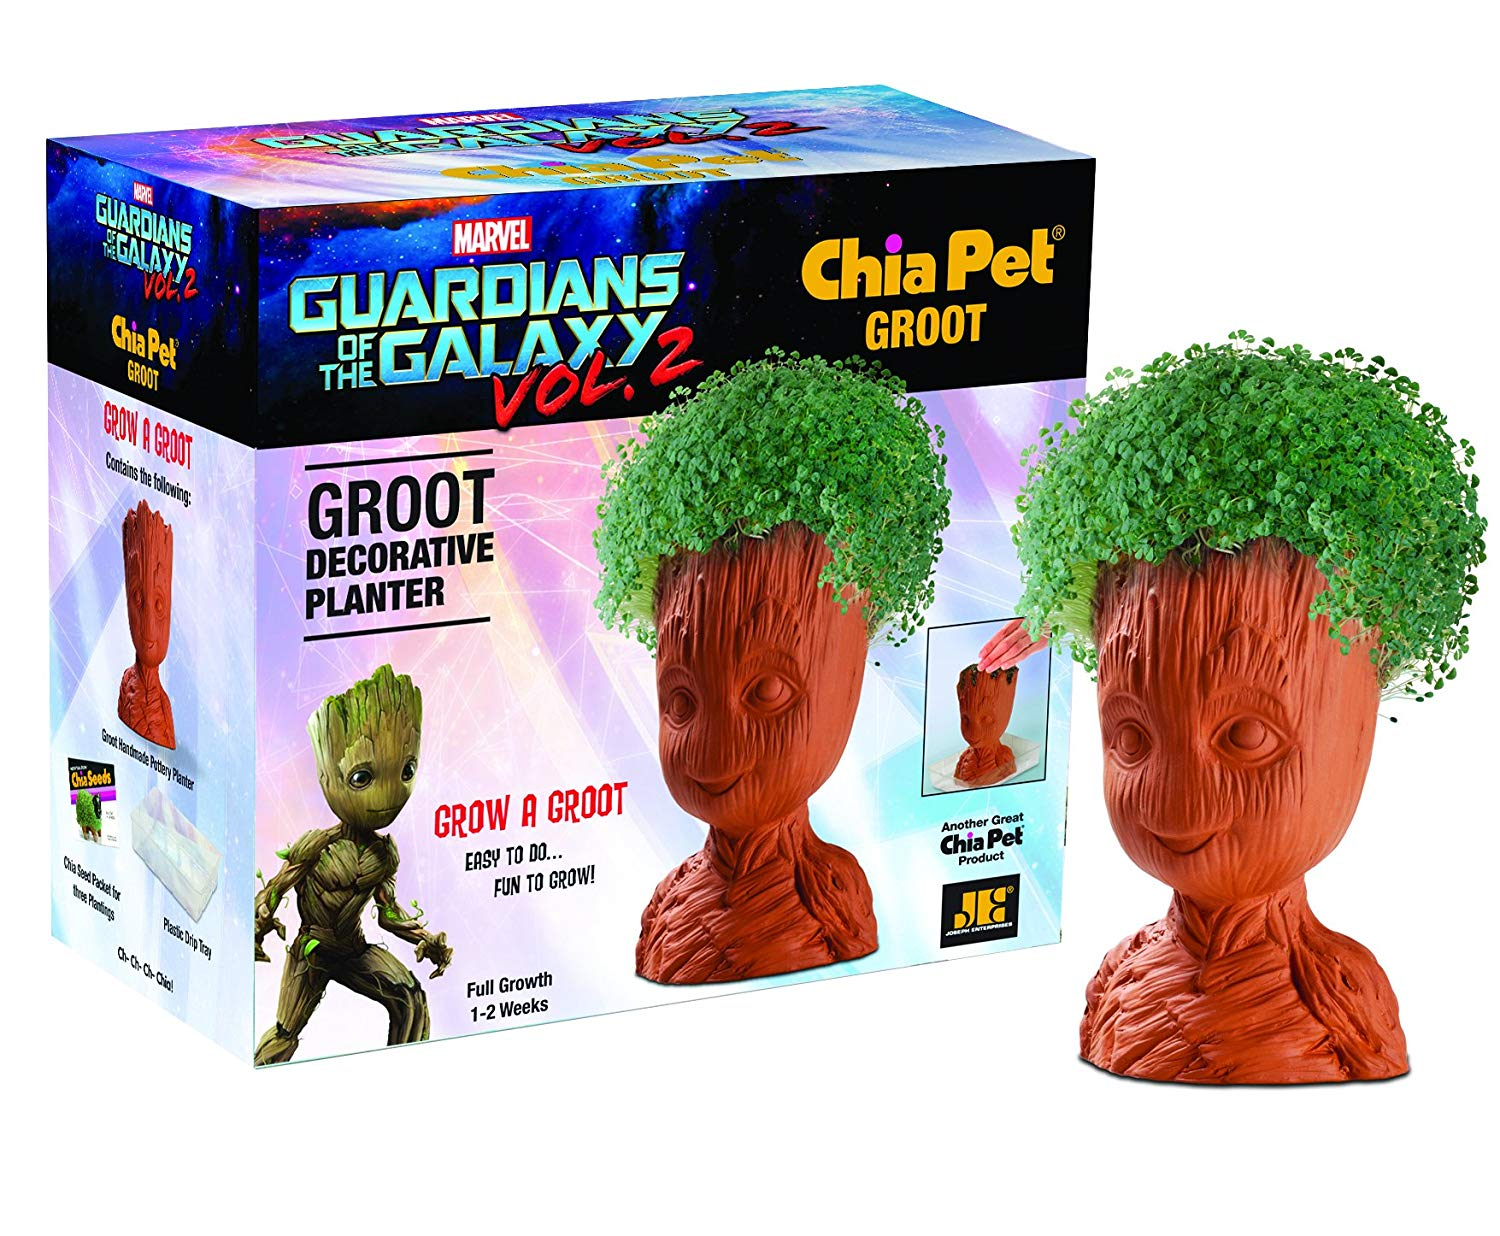 Chia Pet Groot with Seed Pack